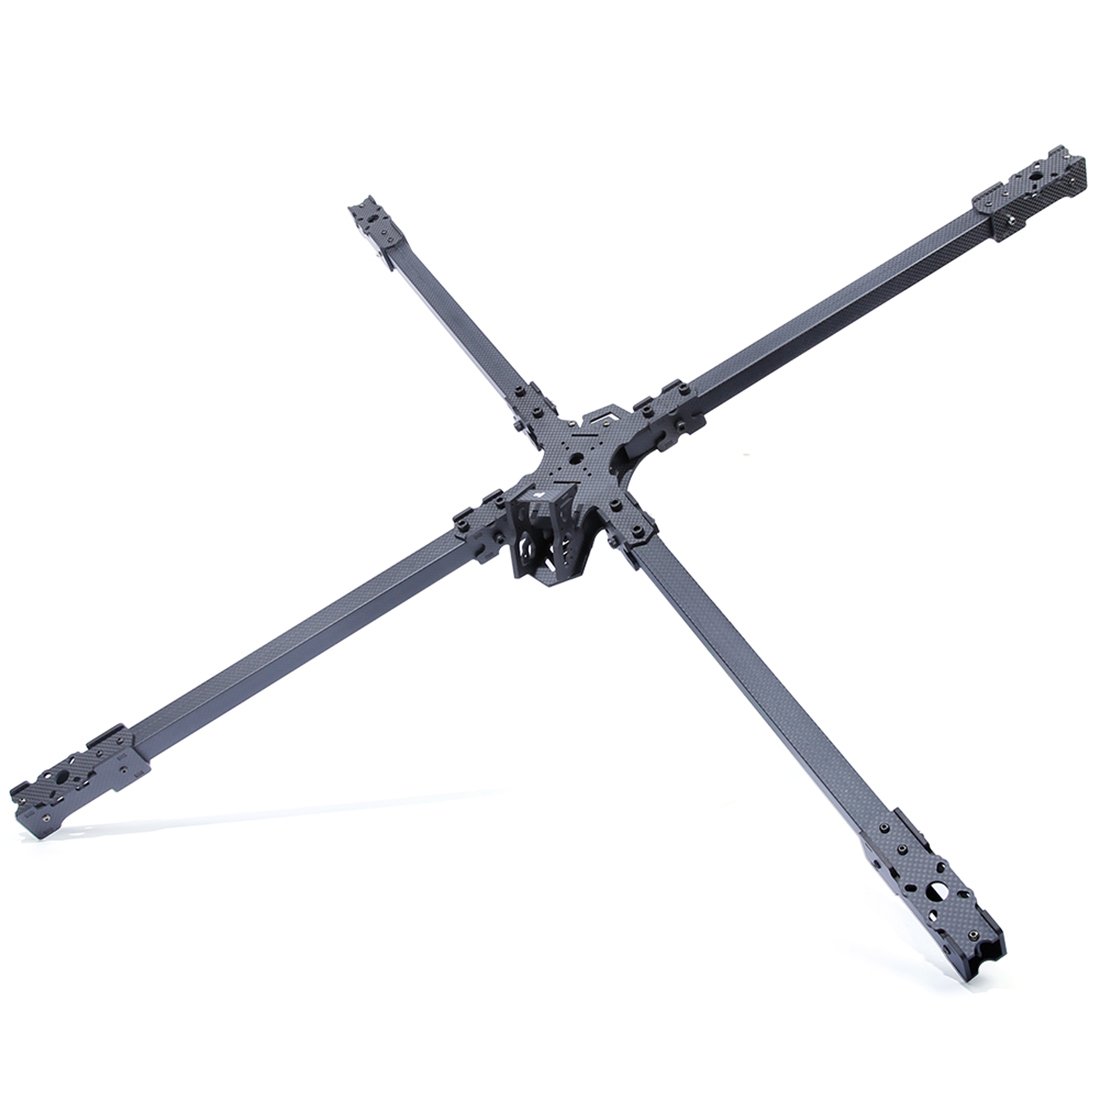 Iflight Ixc13 850mm 13inch X-class Ture X Fpv Racing Frame Compatible 13inch Prop / Succex X80A Single Esc For Fpv Racing Drone